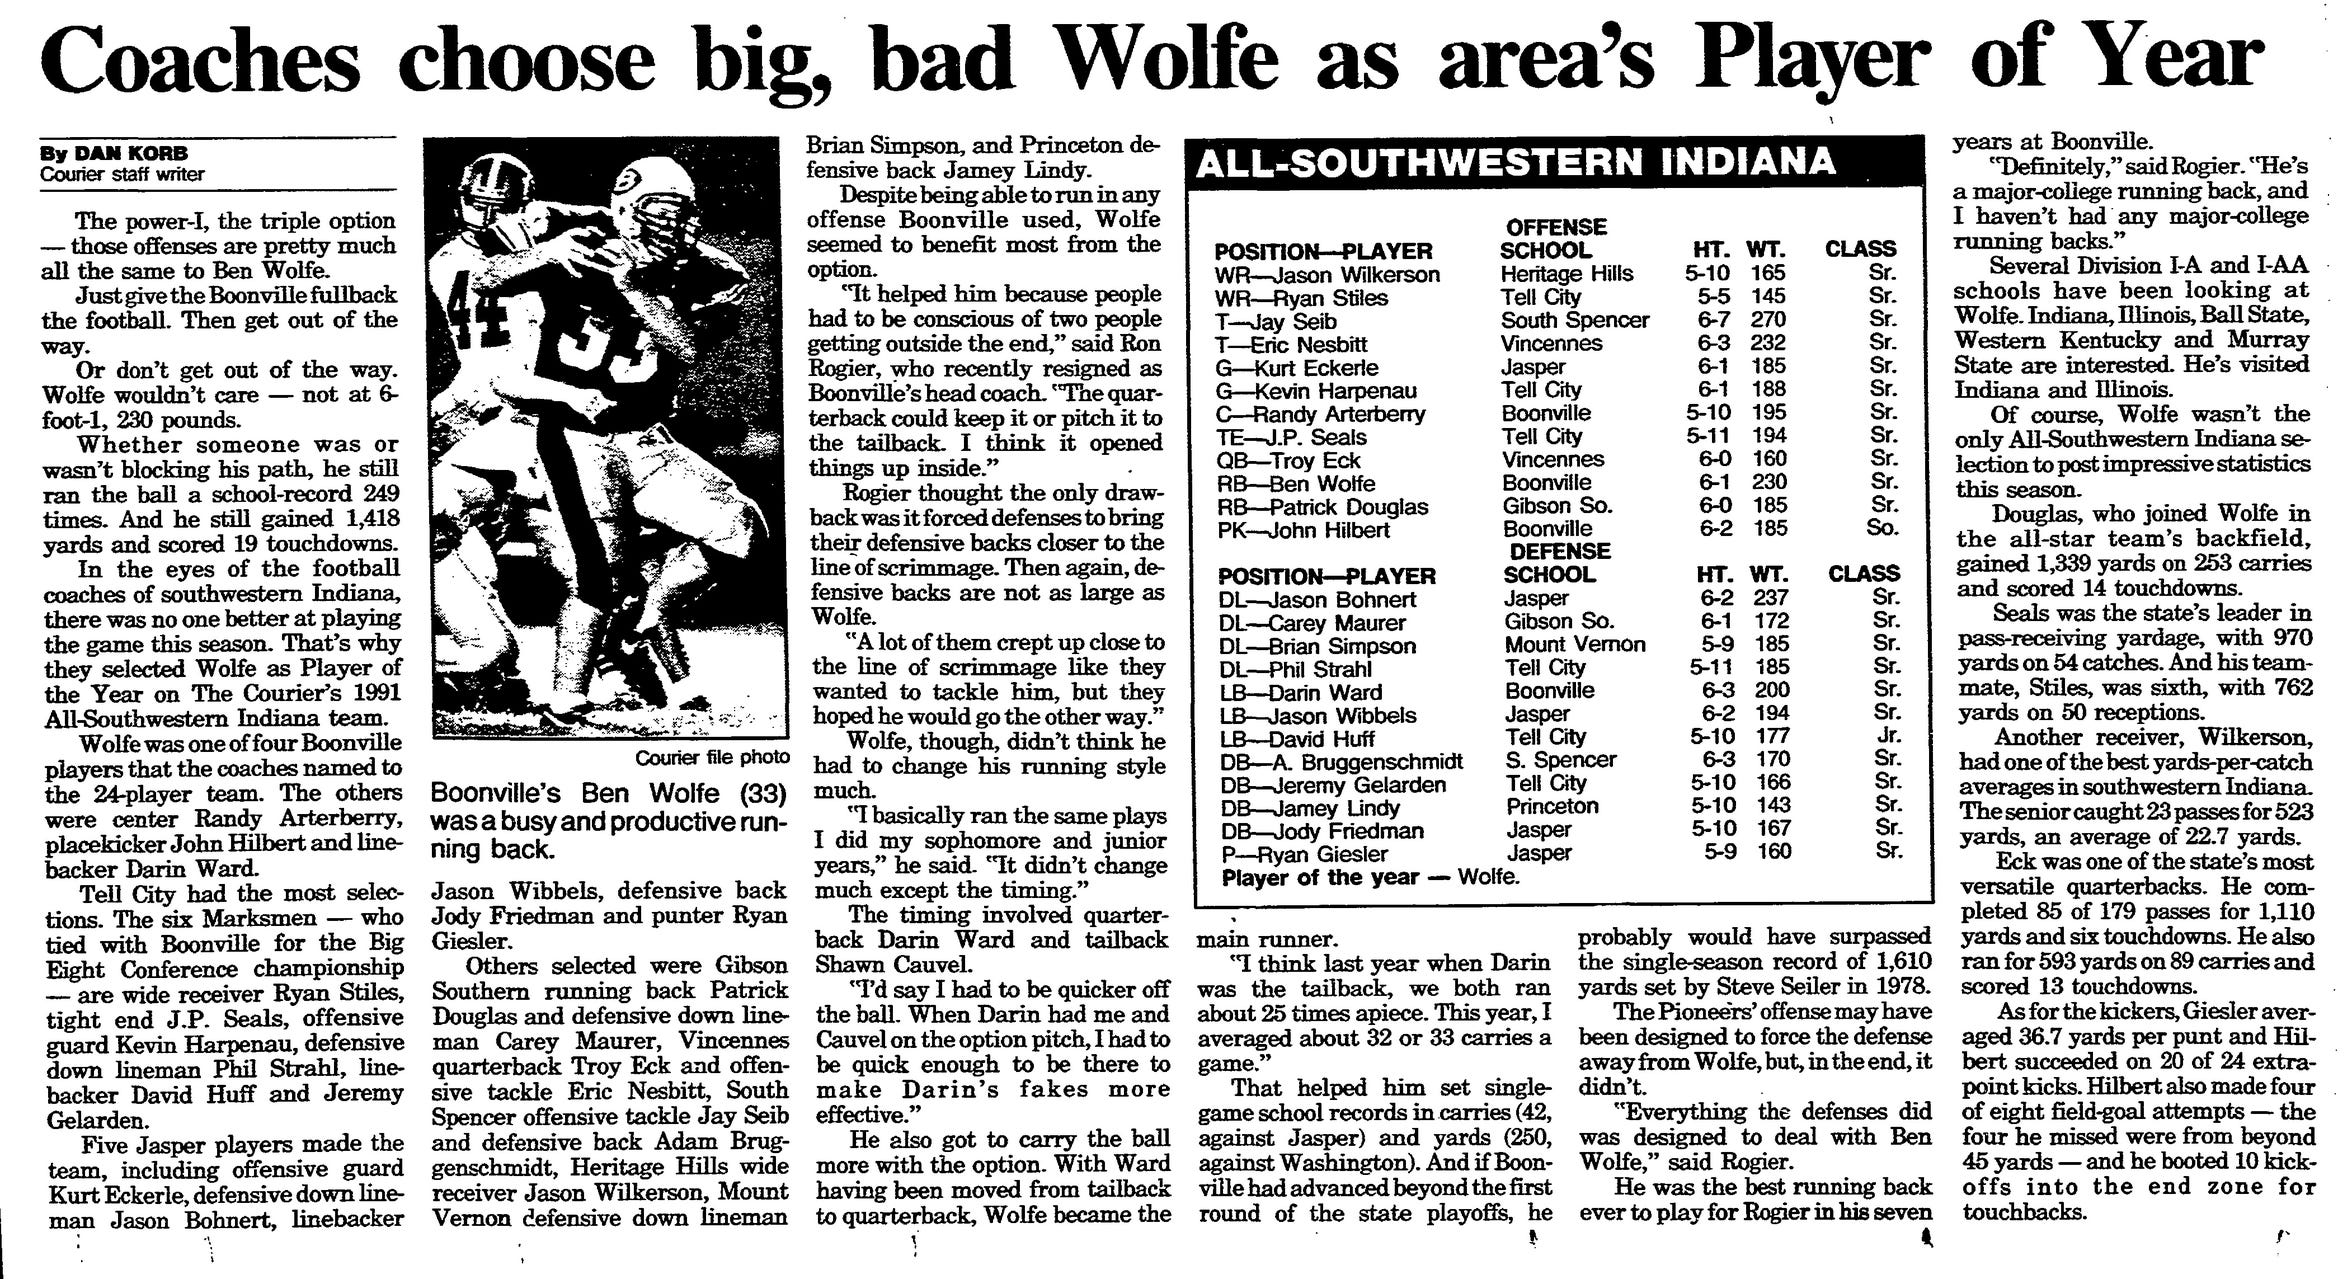 Ben Wolfe, now an assistant coach for the Pioneers, was named all-Southwestern Indiana player of the year  by the Evansville Courier in 1991.